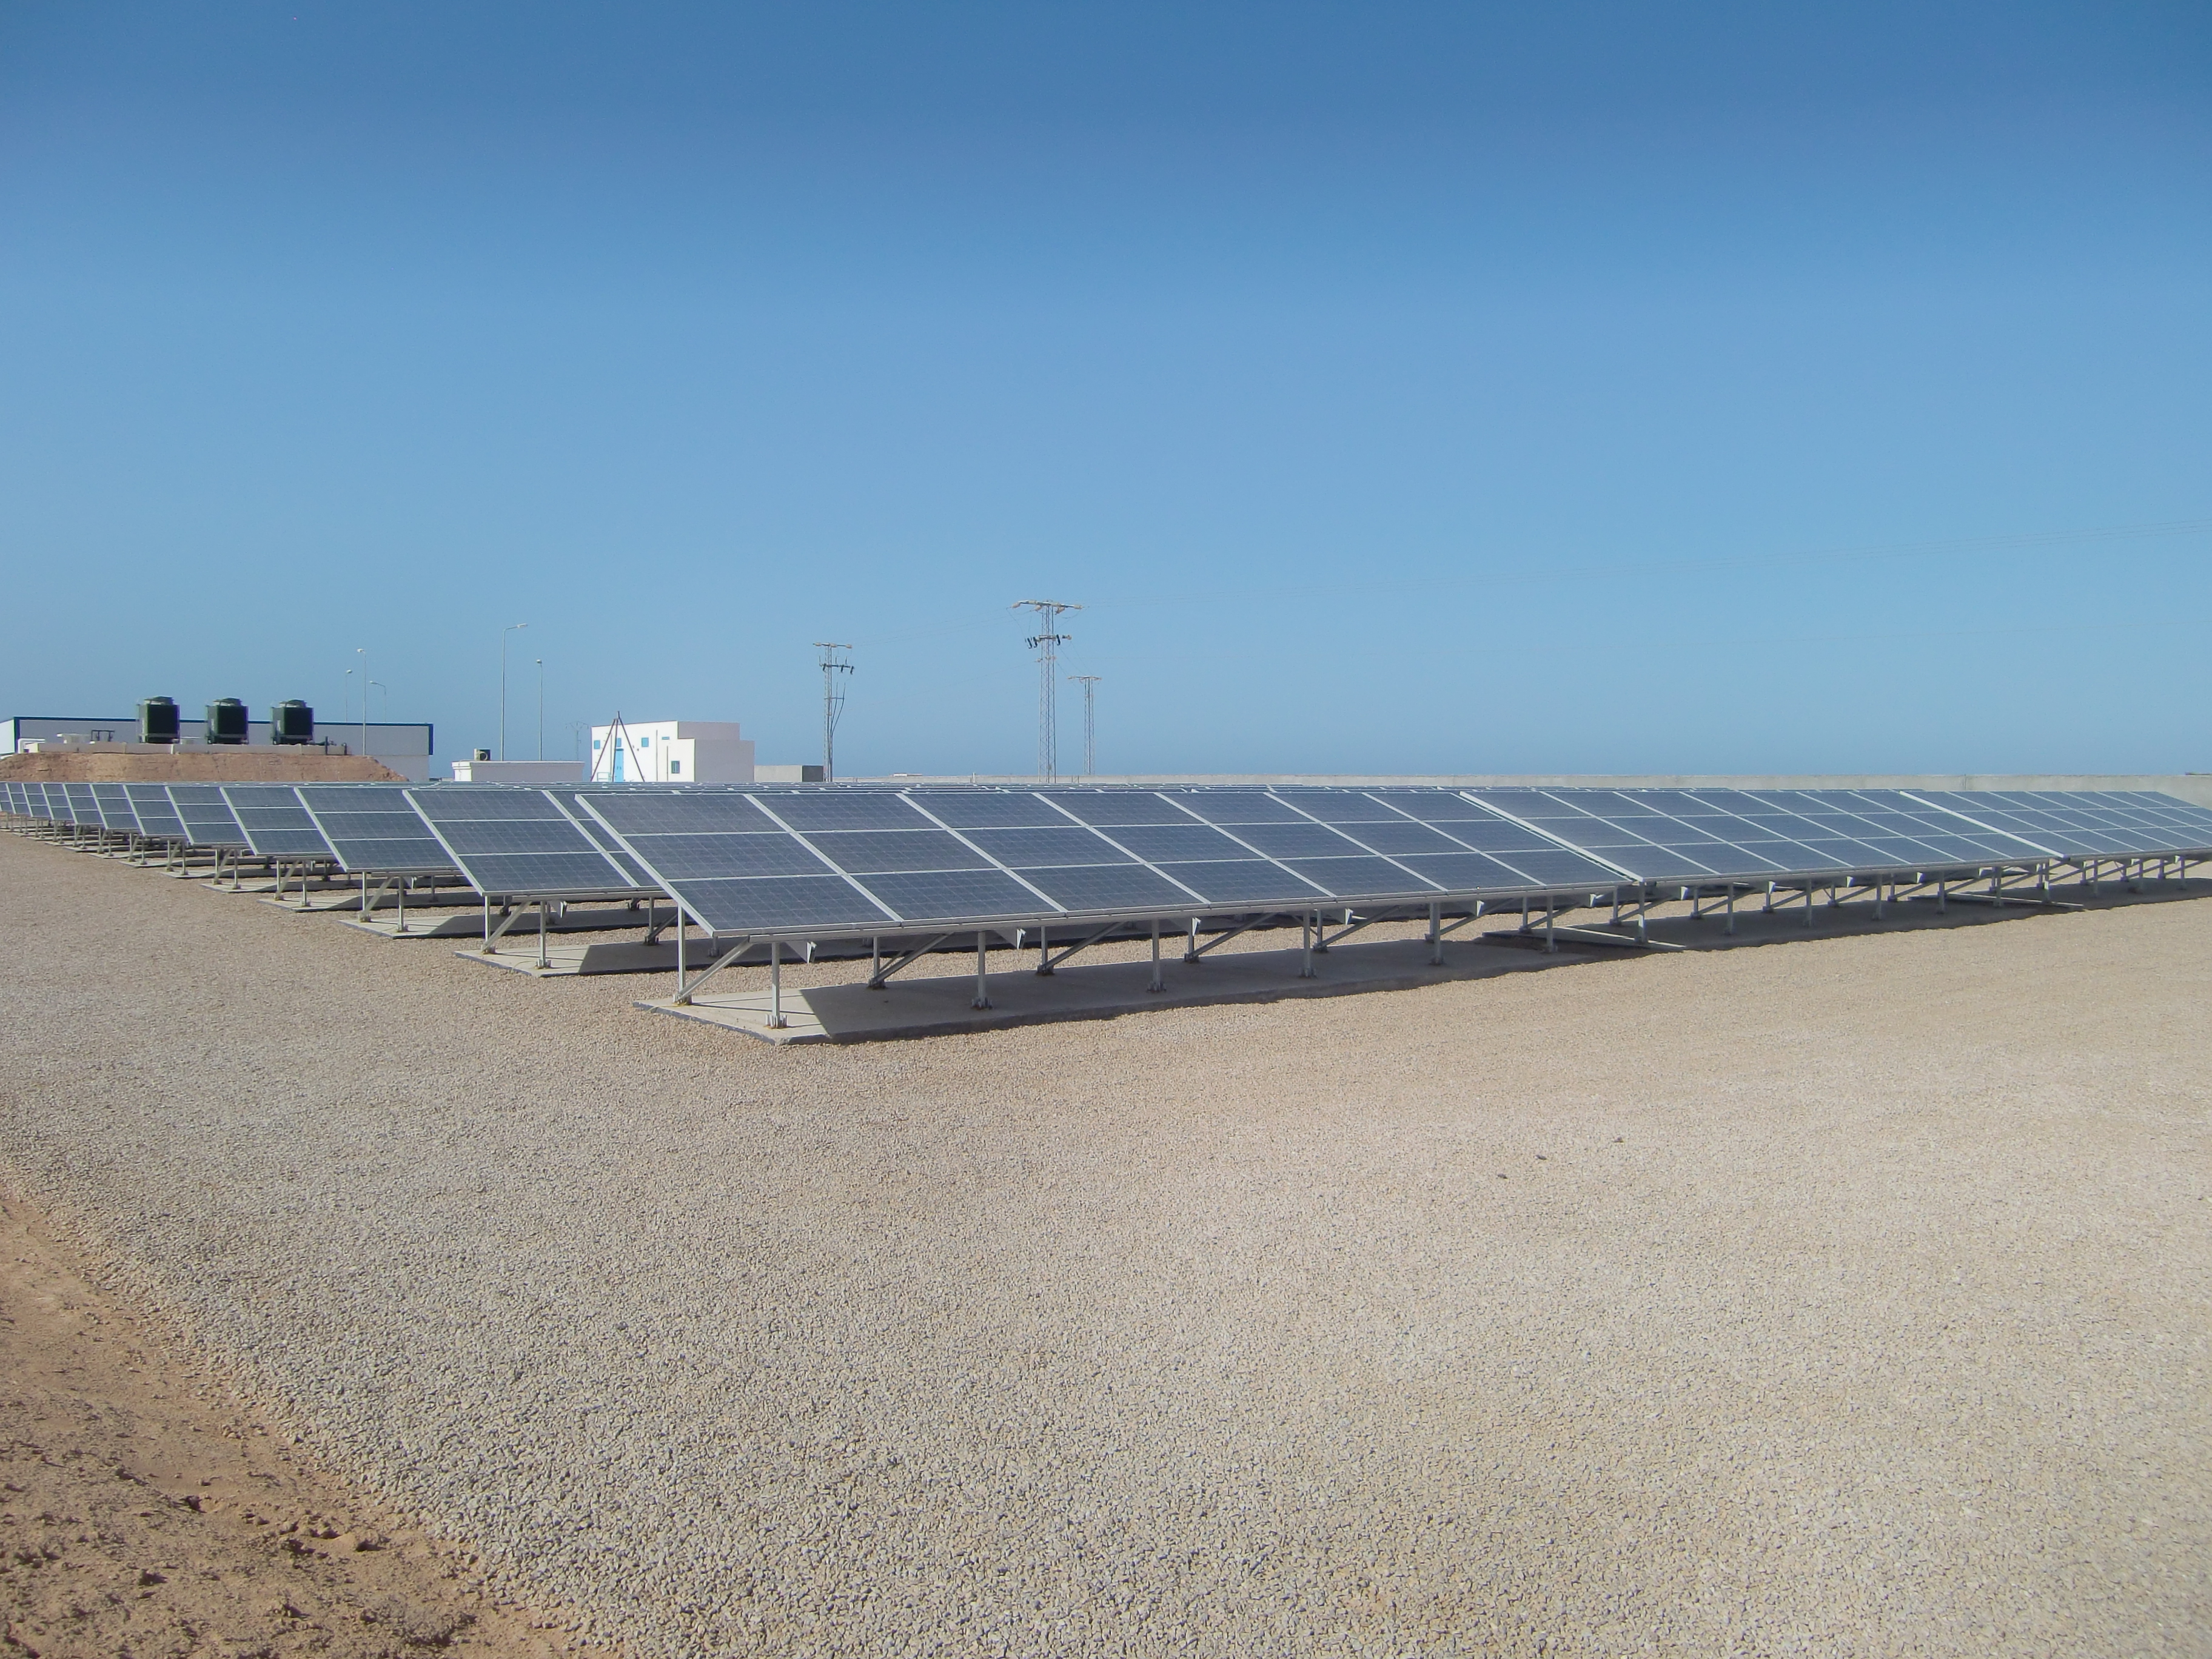 PV system outlook